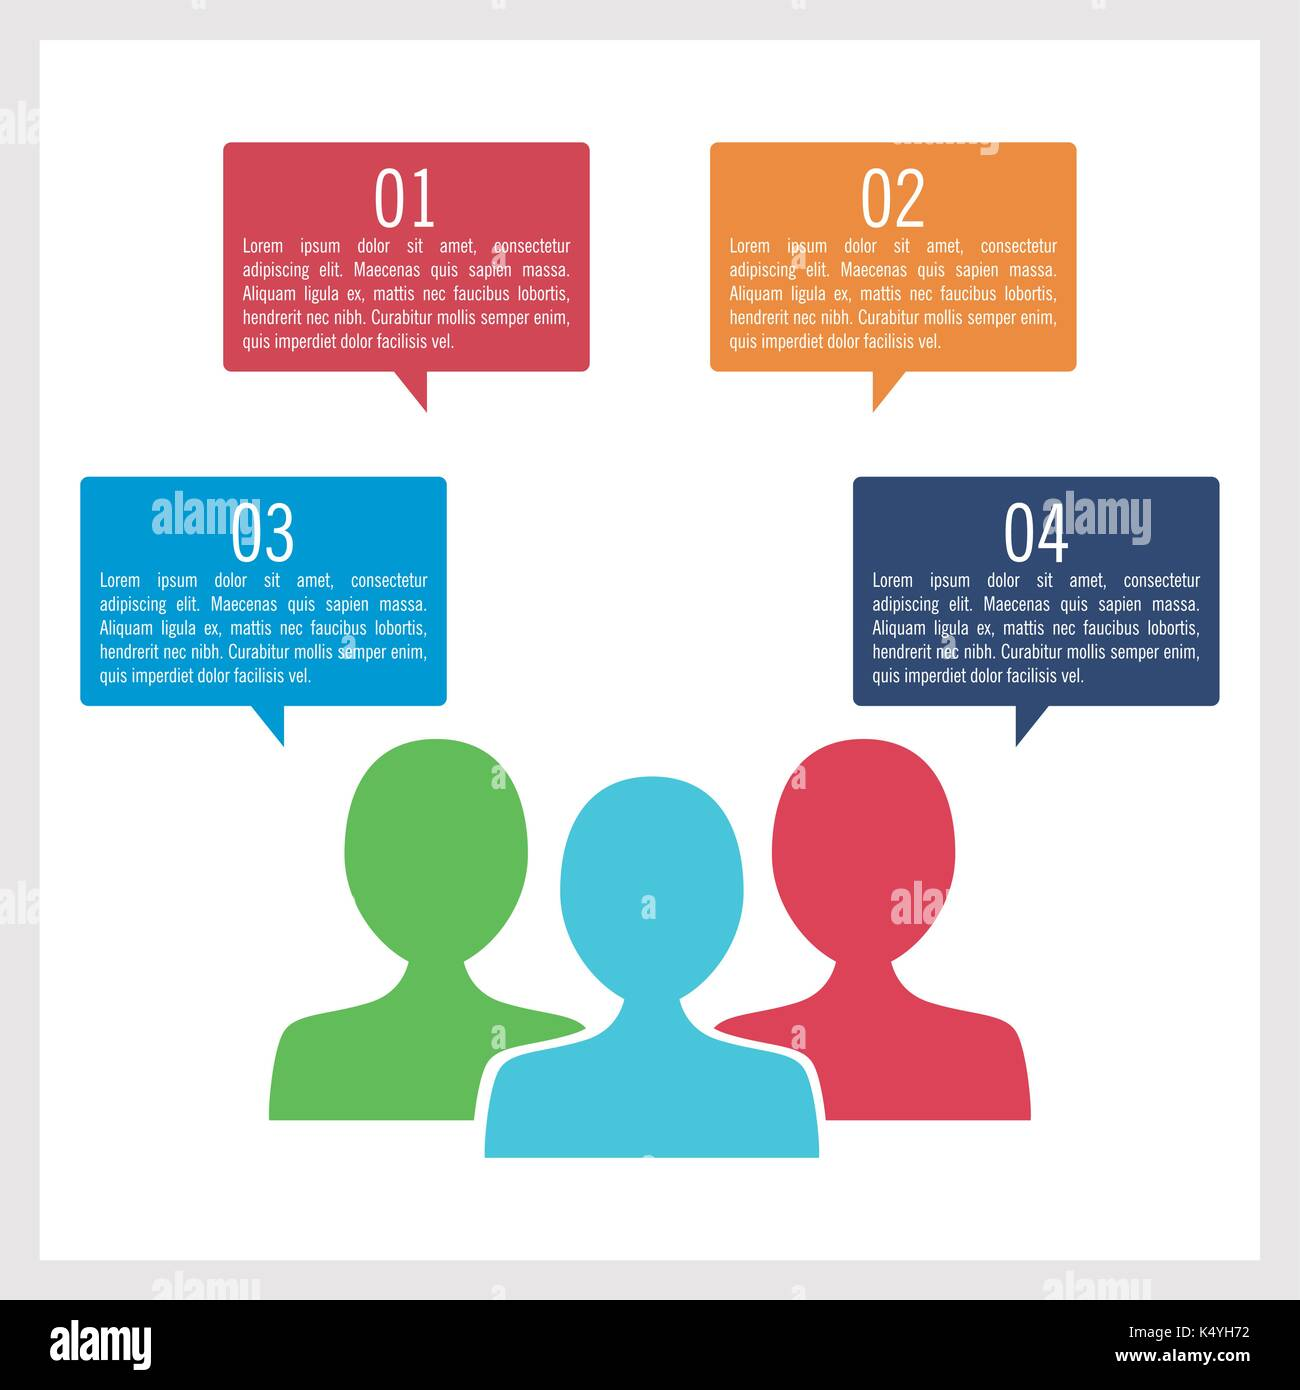 Business and education infographic - Stock Image